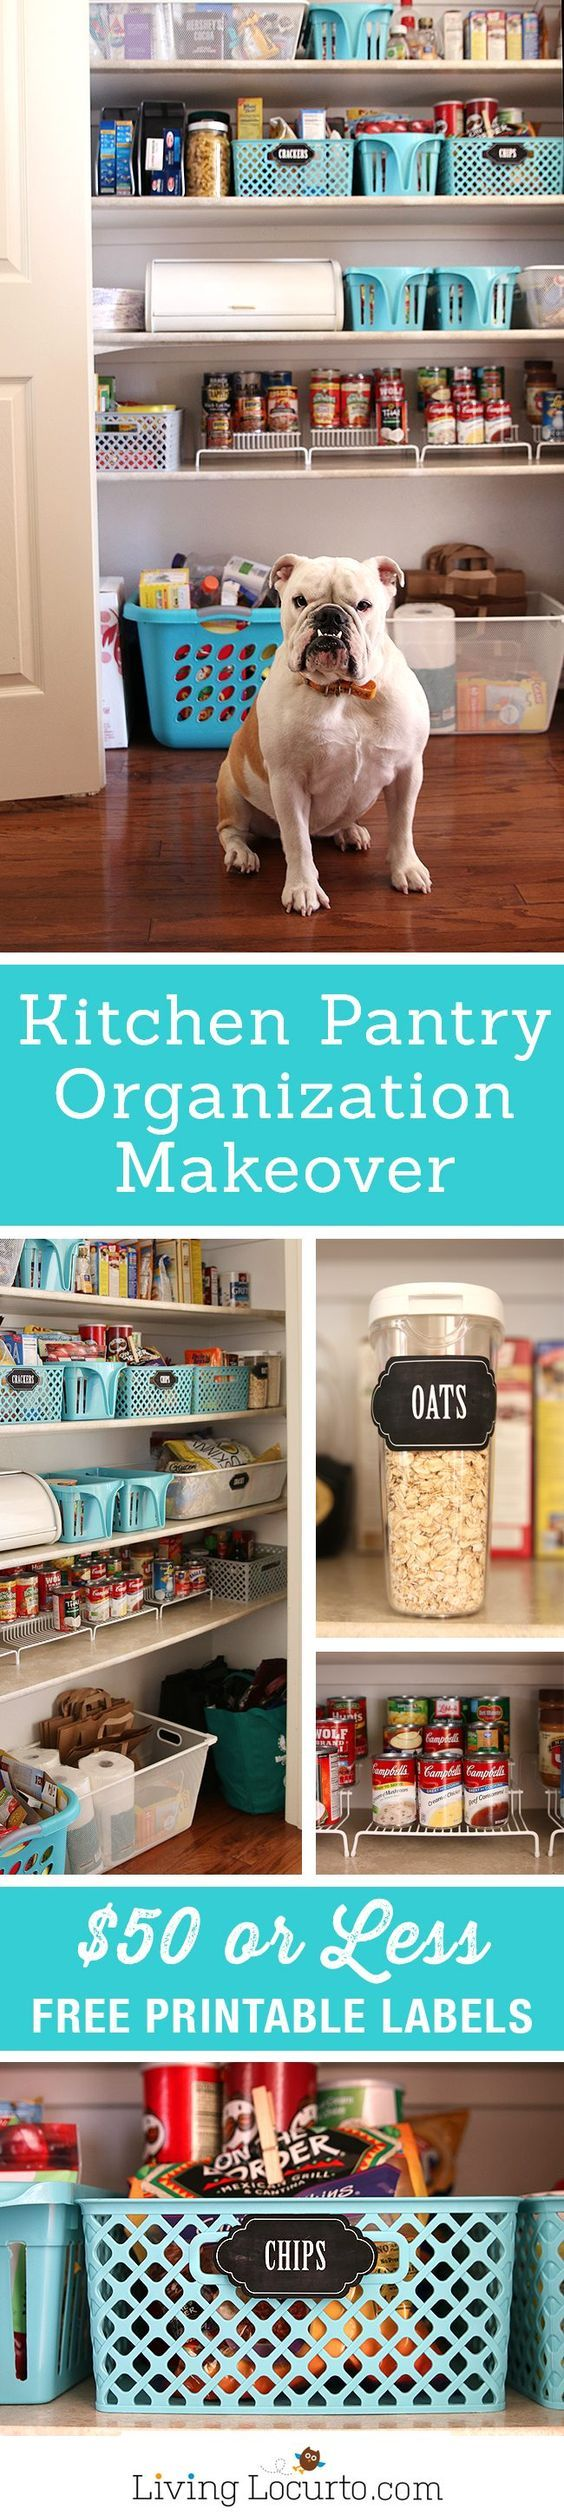 134 best organize :: pantry images on Pinterest | Pantry ideas ...